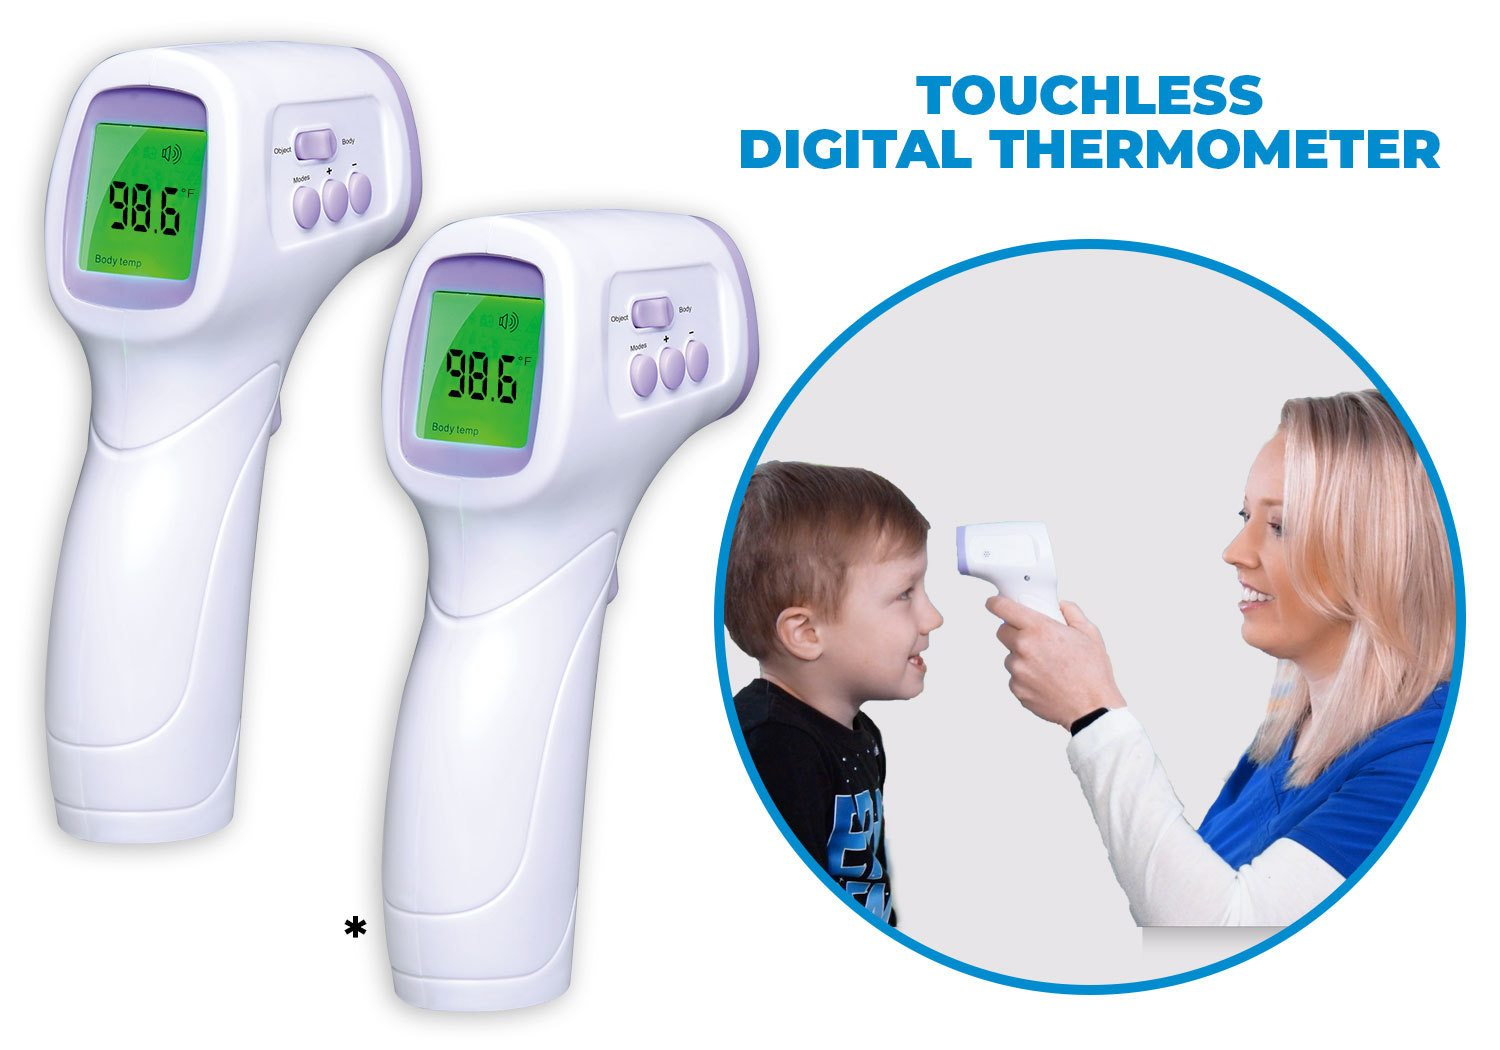 Temp-A-Sure Touchless Digital Thermometer Double Offer